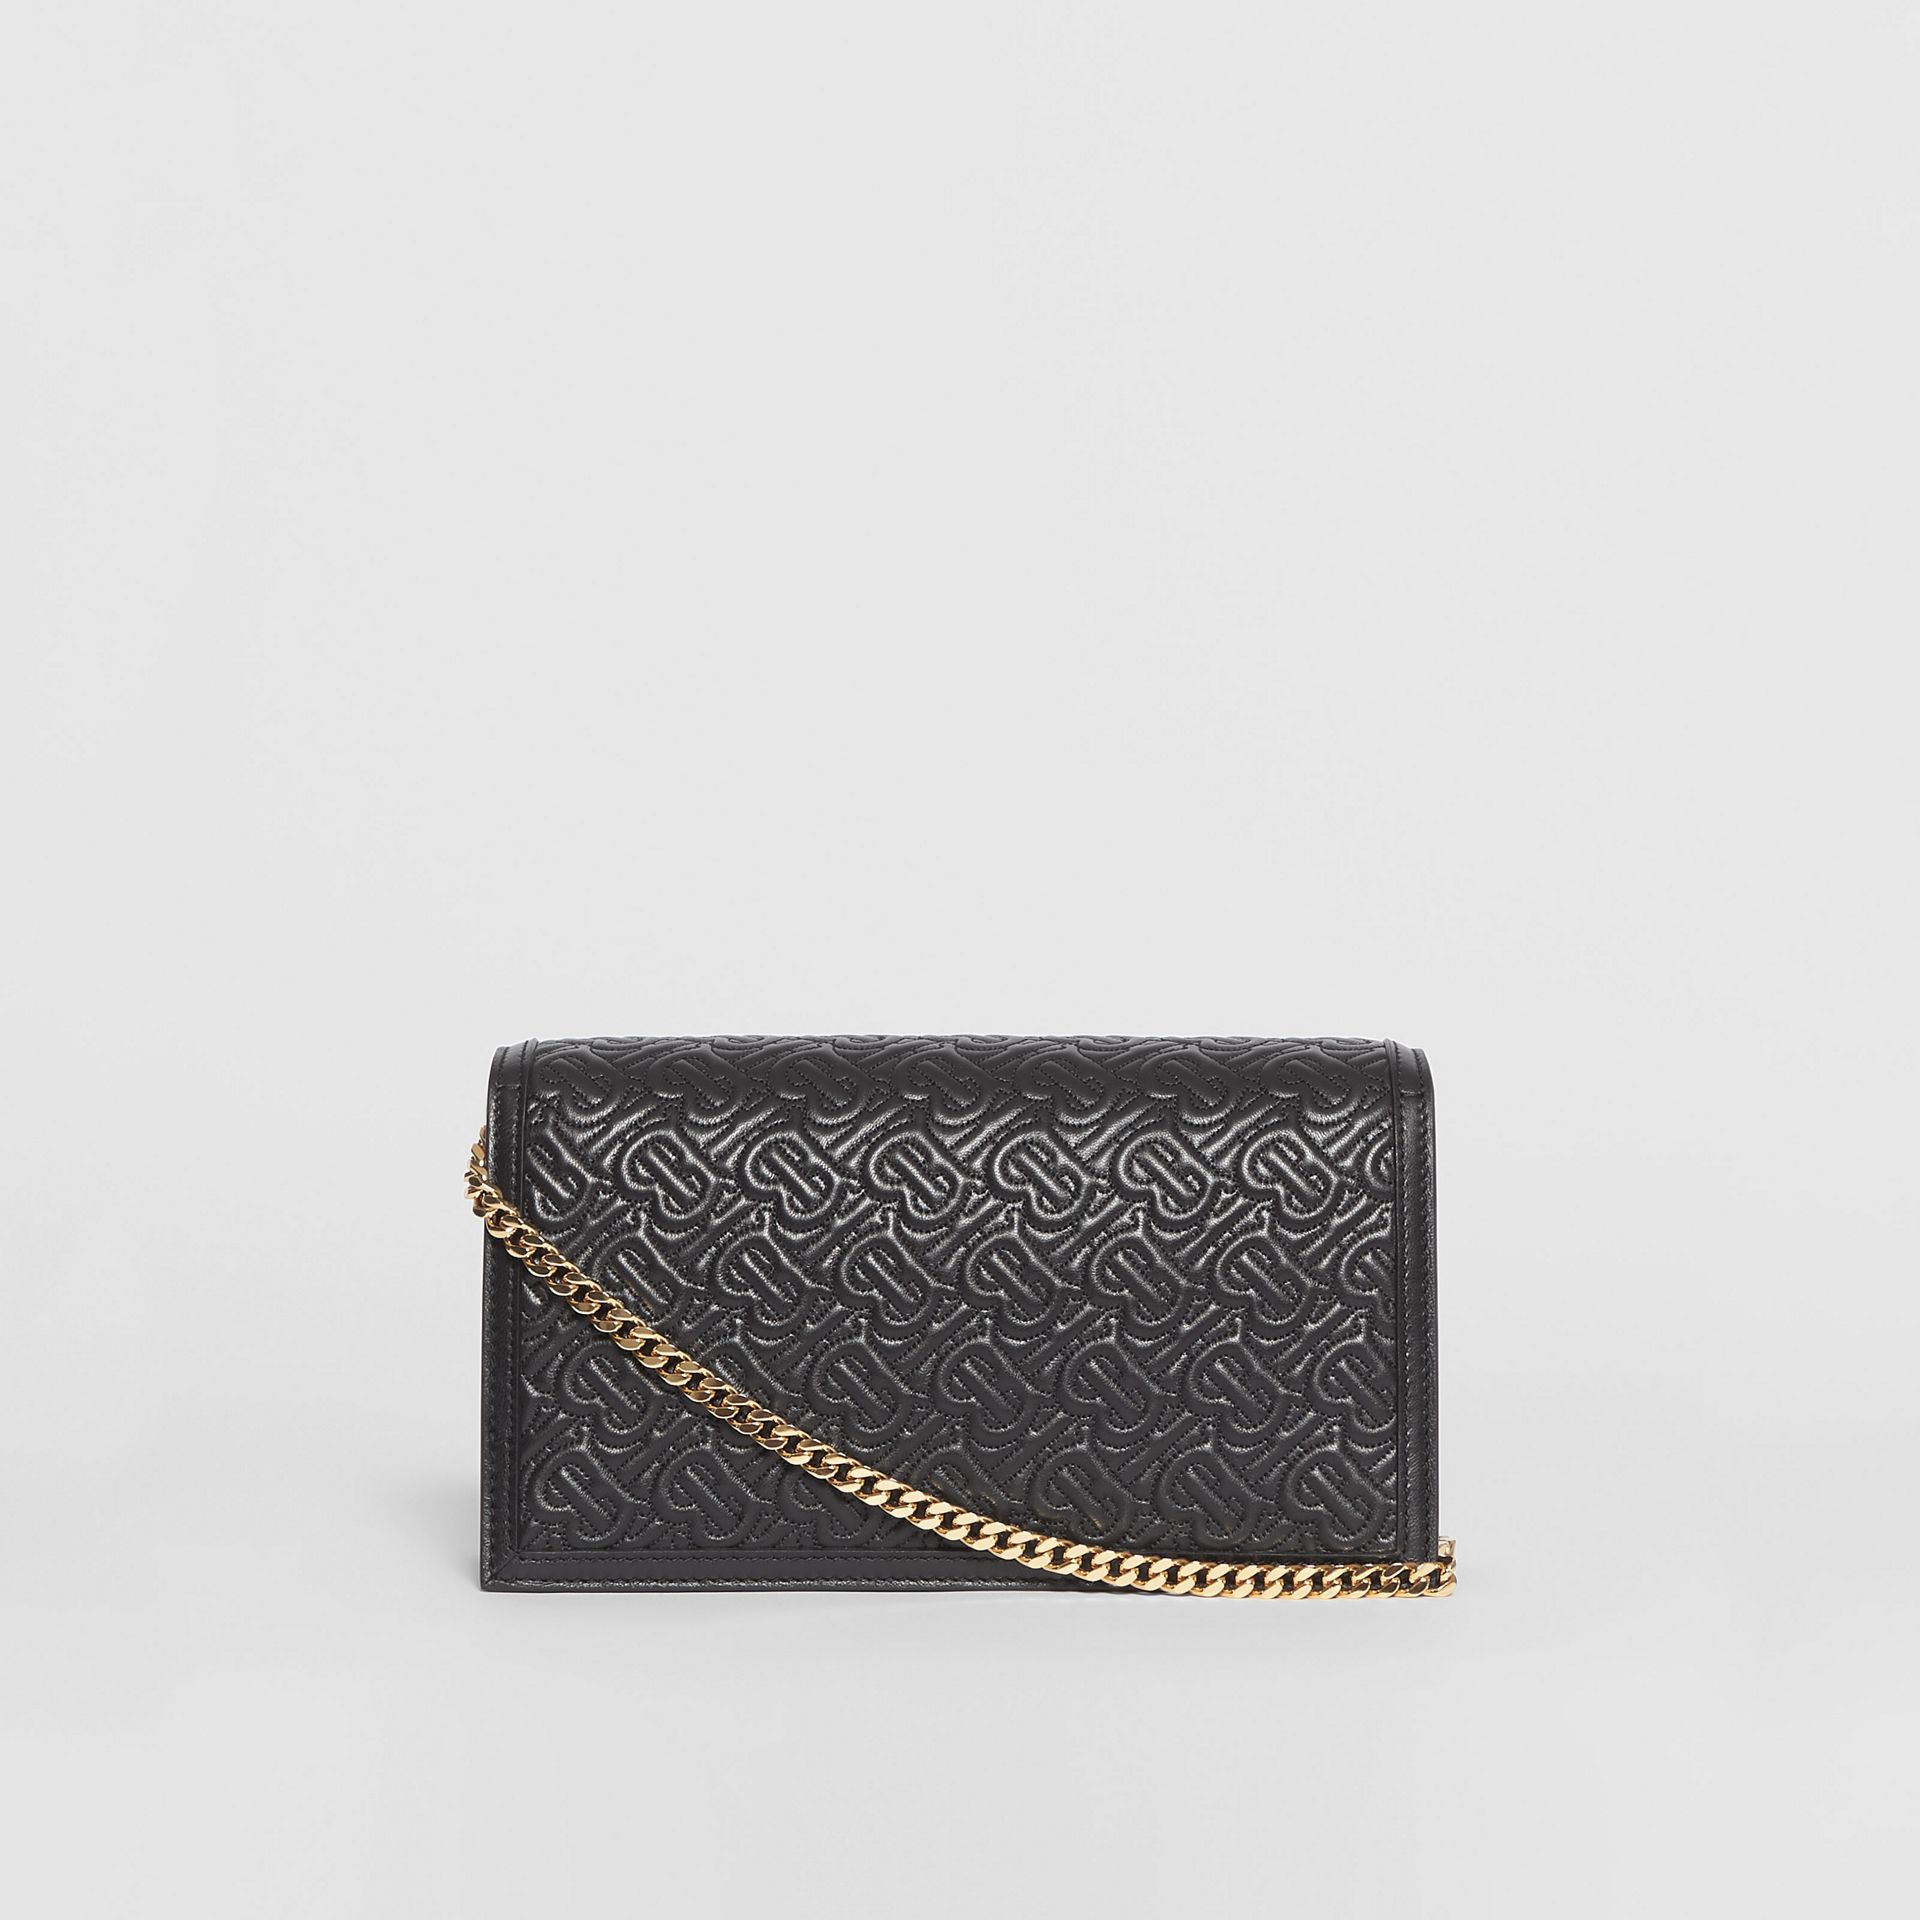 Small Quilted Monogram TB Envelope Clutch in Black - Women | Burberry - gallery image 7